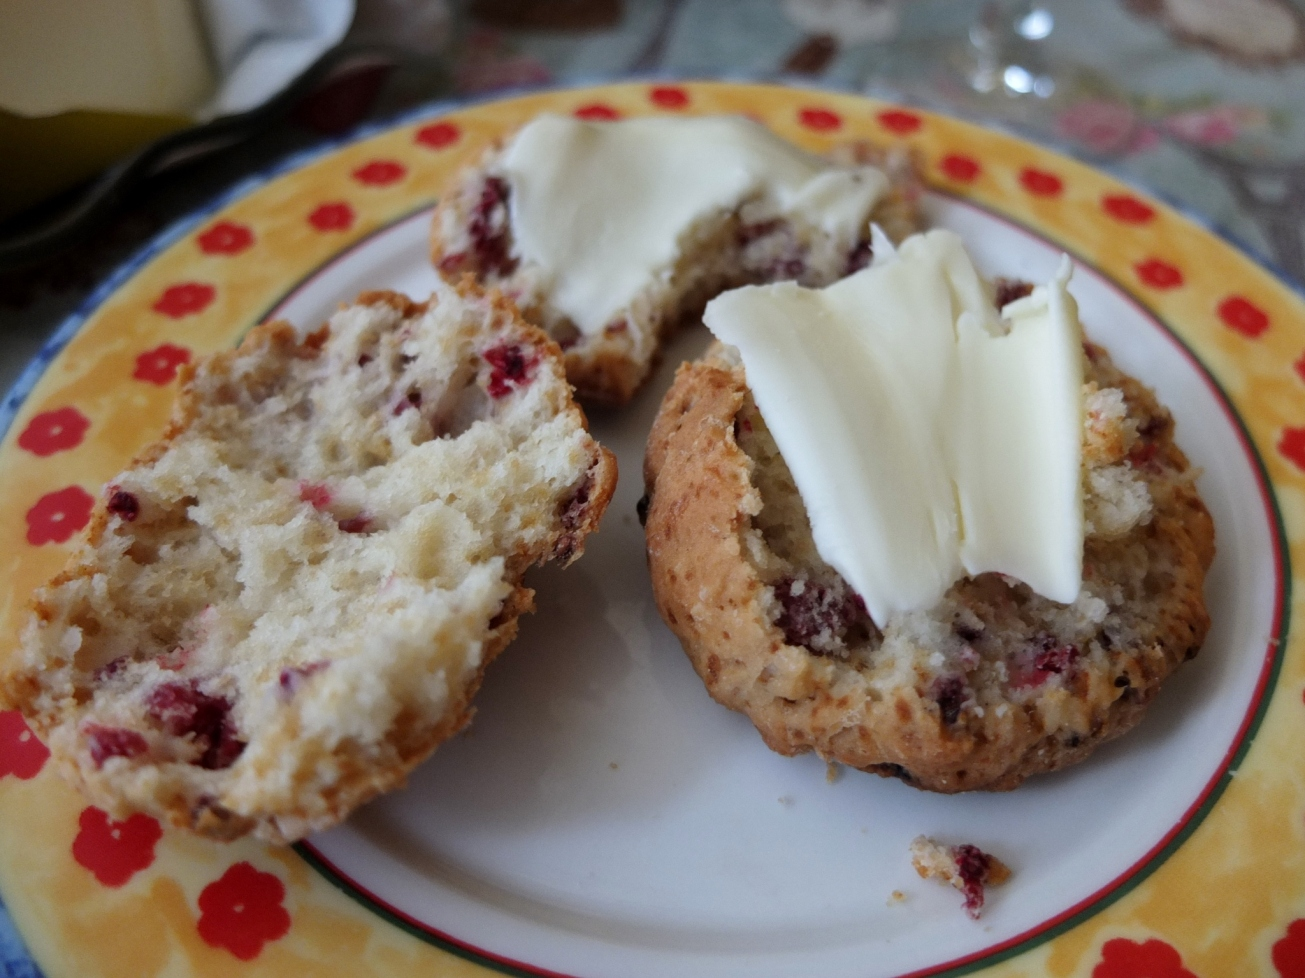 Have another Ispahan scone!